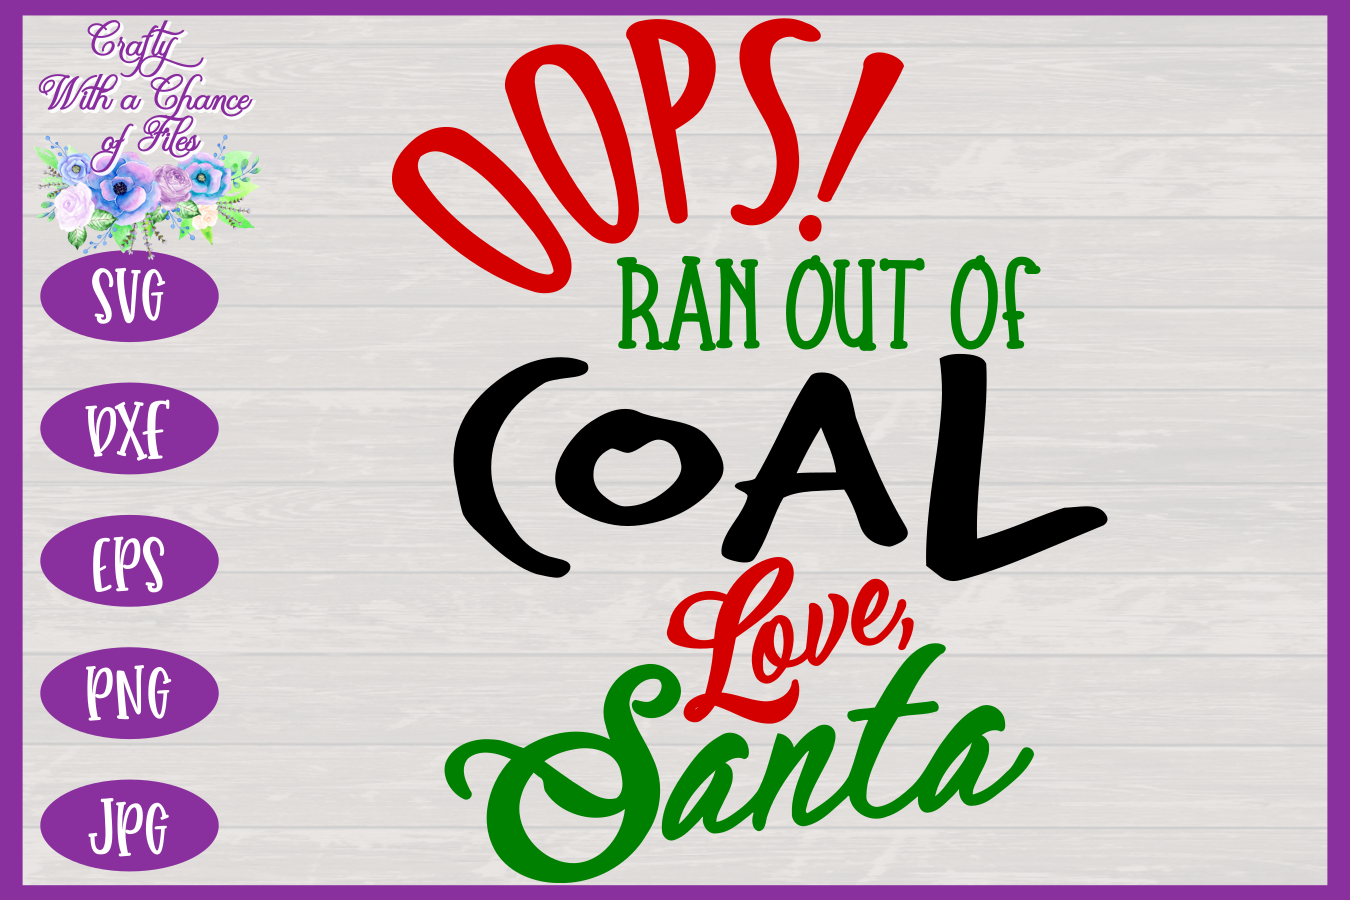 Christmas SVG | Toilet Paper SVG | Funny Gag Gift SVG example image 3